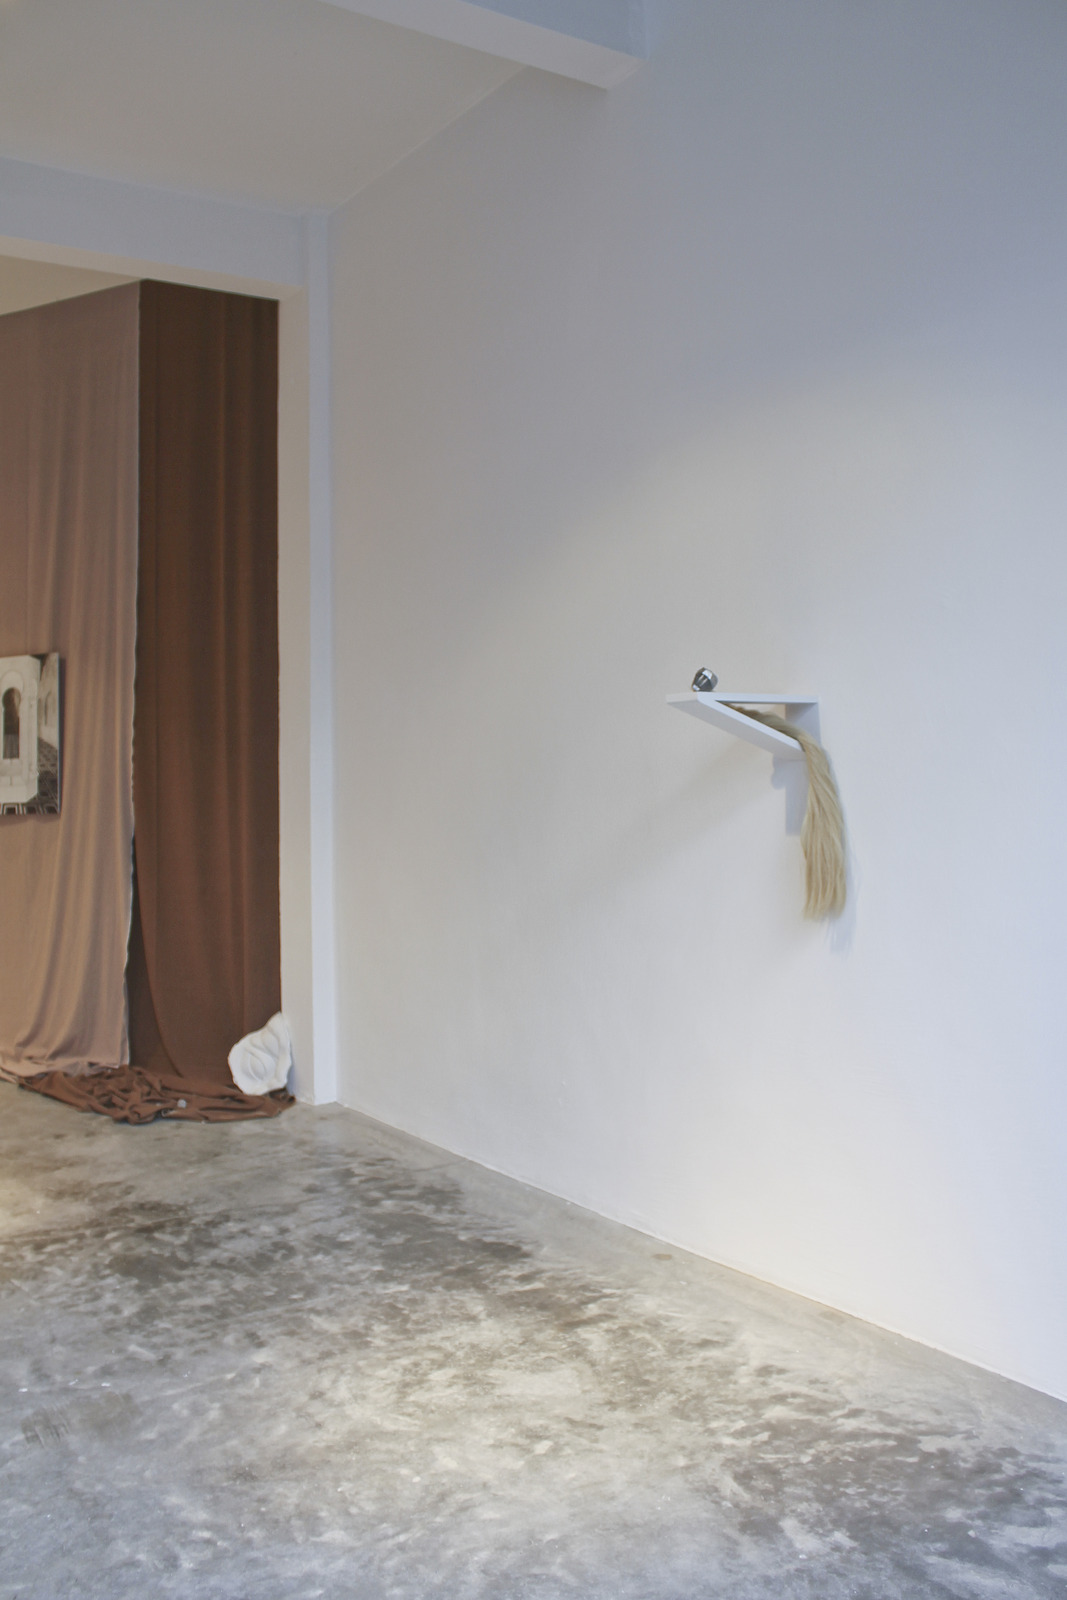 Federico Acal & Liesbeth Doms at DMW Art Space 02